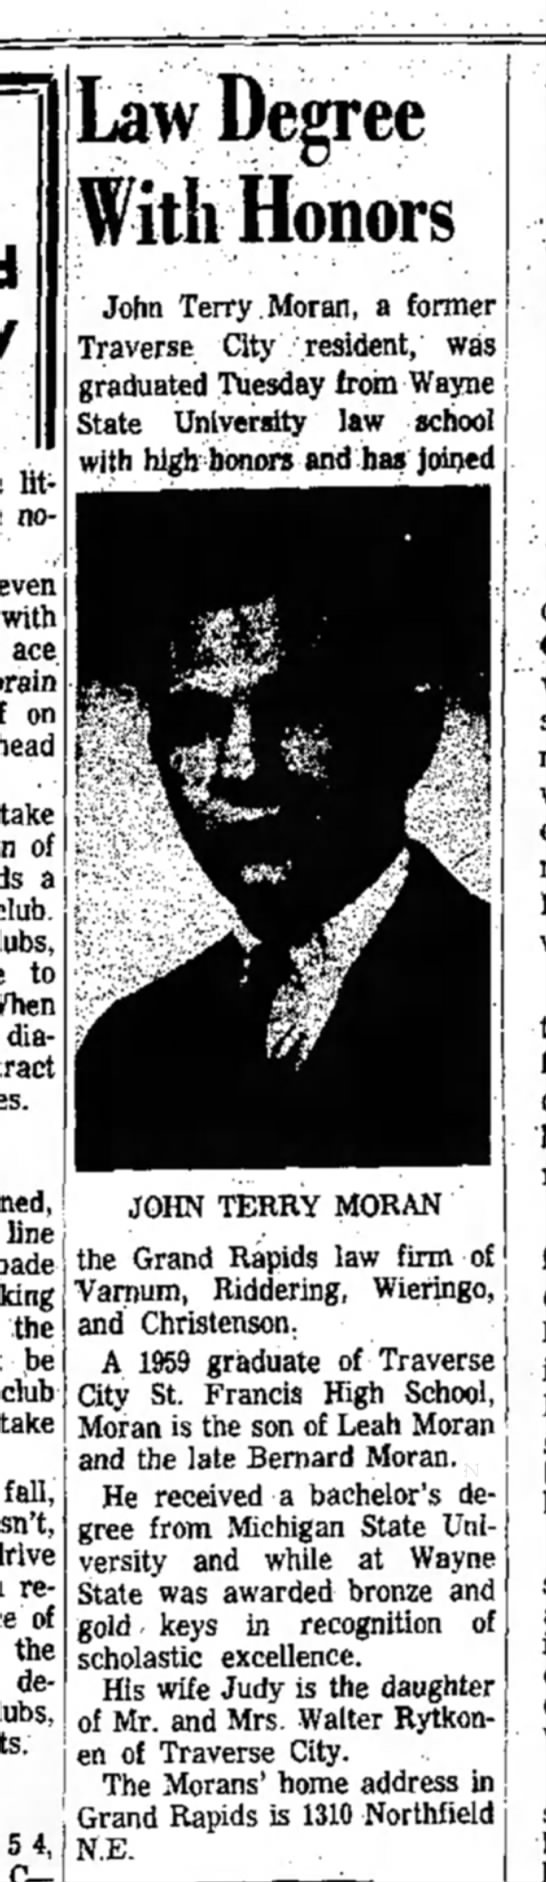 J. Terry Moran, 1969 - little no- seven with ace on take of a club....